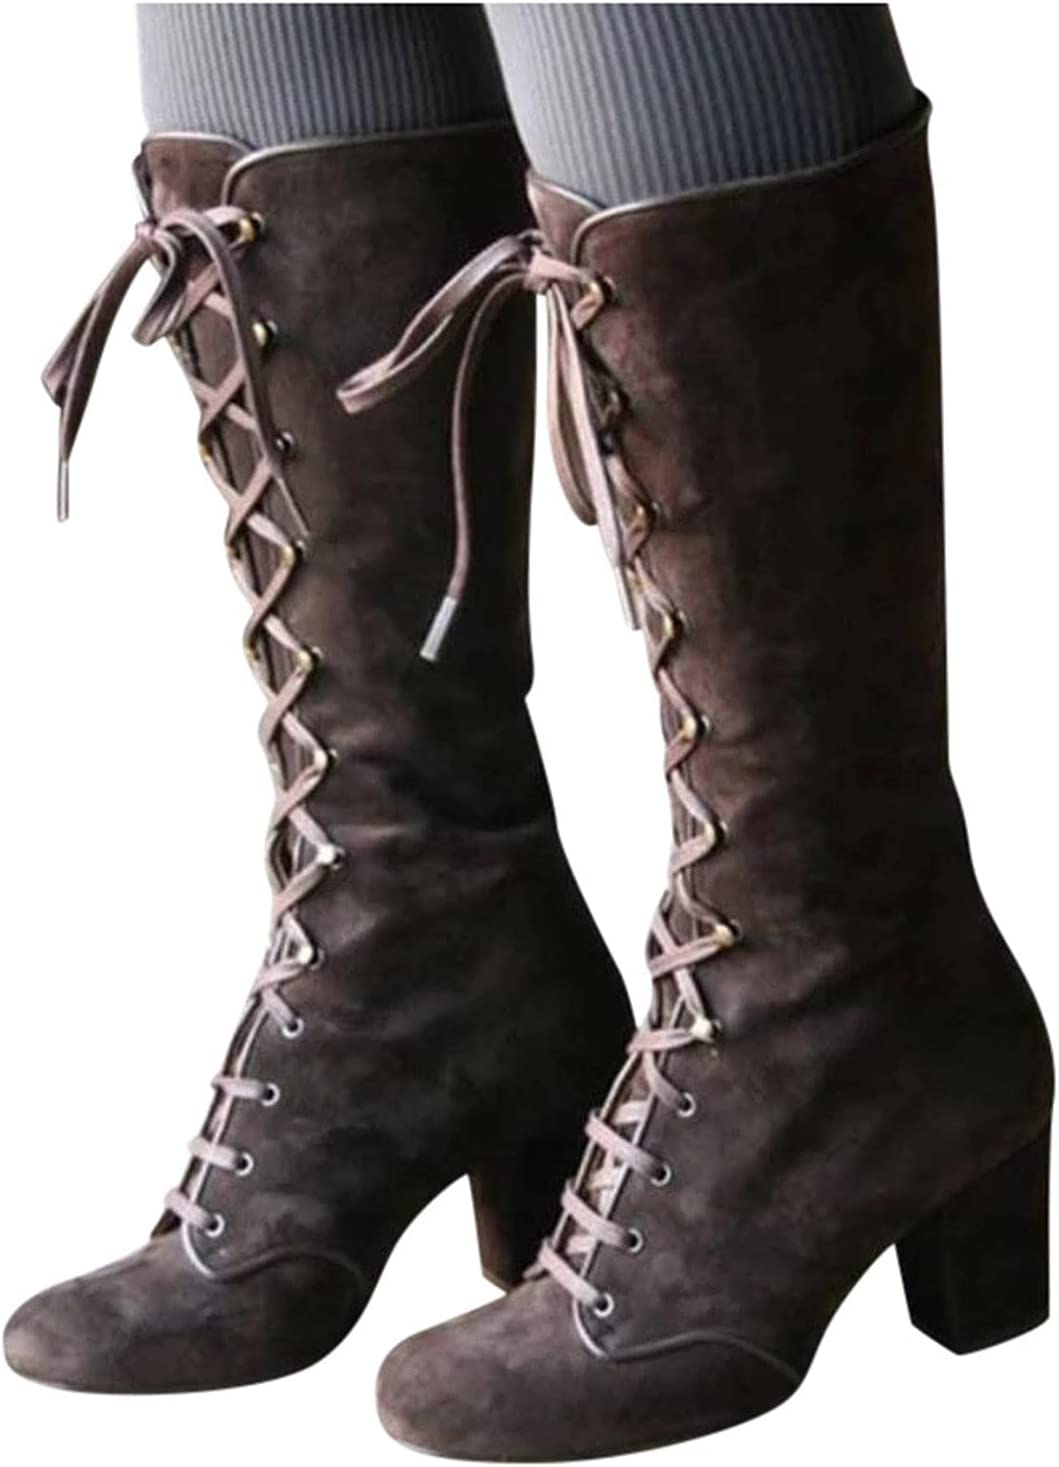 Swiusd Women Fashion Casual Vintage Retro Mid-Calf Boots Lace Up Thick Heels Boots Women's Round Toe Lace Up Knee High Riding Boots